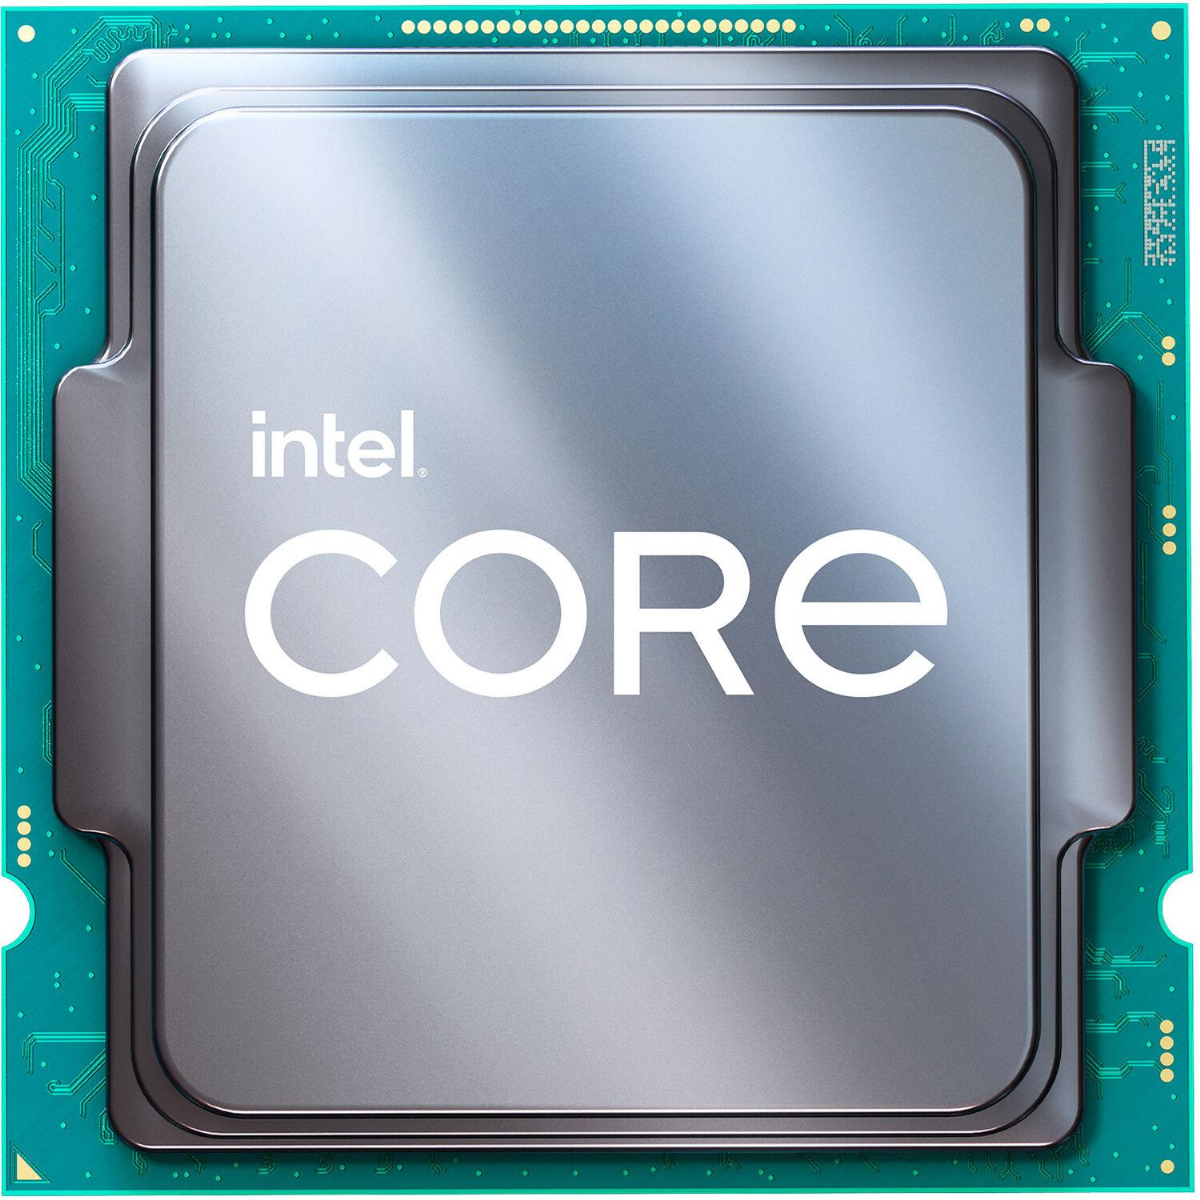 Процесор Intel Core i5-11400 (2.60Ghz Up to 4.40Ghz,12MB, 65W, LGA1200) TRAY